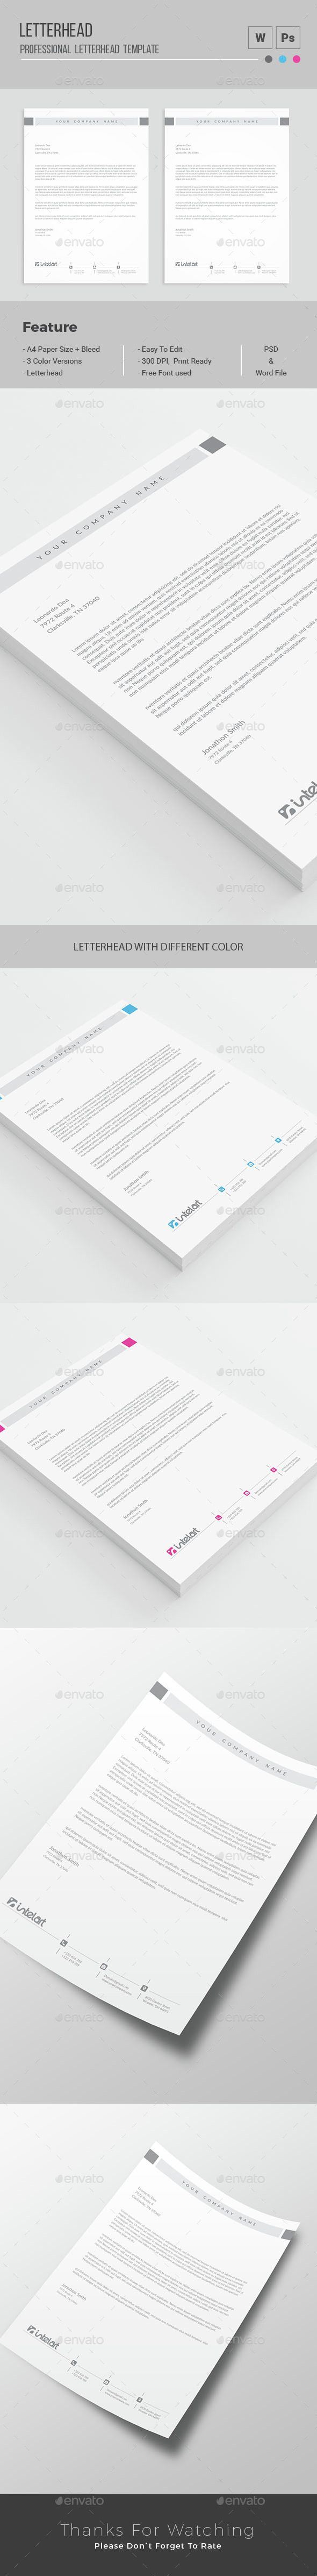 The 25 best letterhead template ideas on pinterest letterhead letterhead spiritdancerdesigns Choice Image